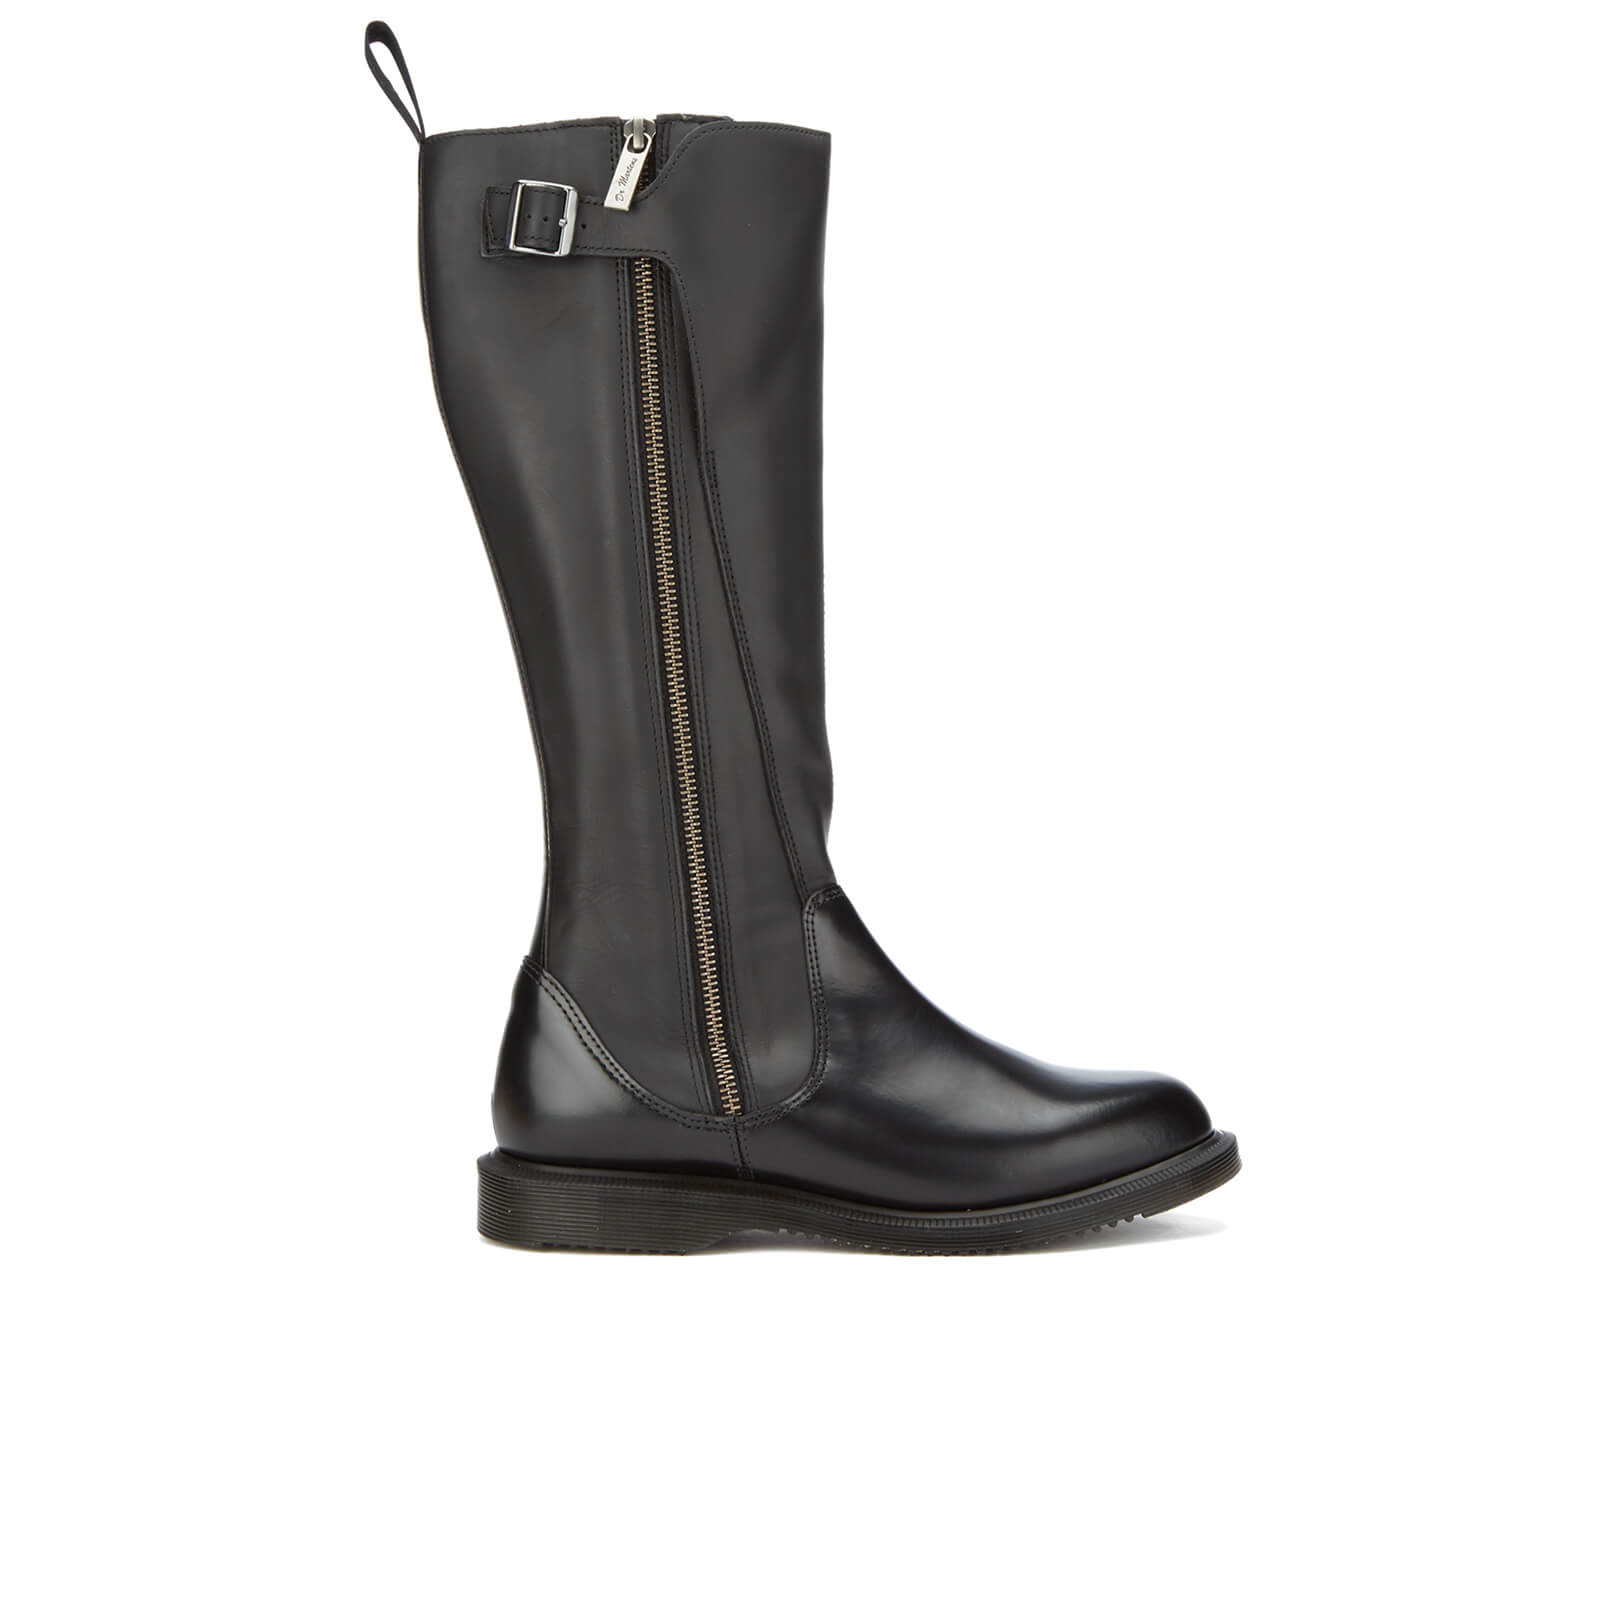 90a9676ccb6 Dr. Martens Women's Chianna Polished Smooth Knee High Boots - Black